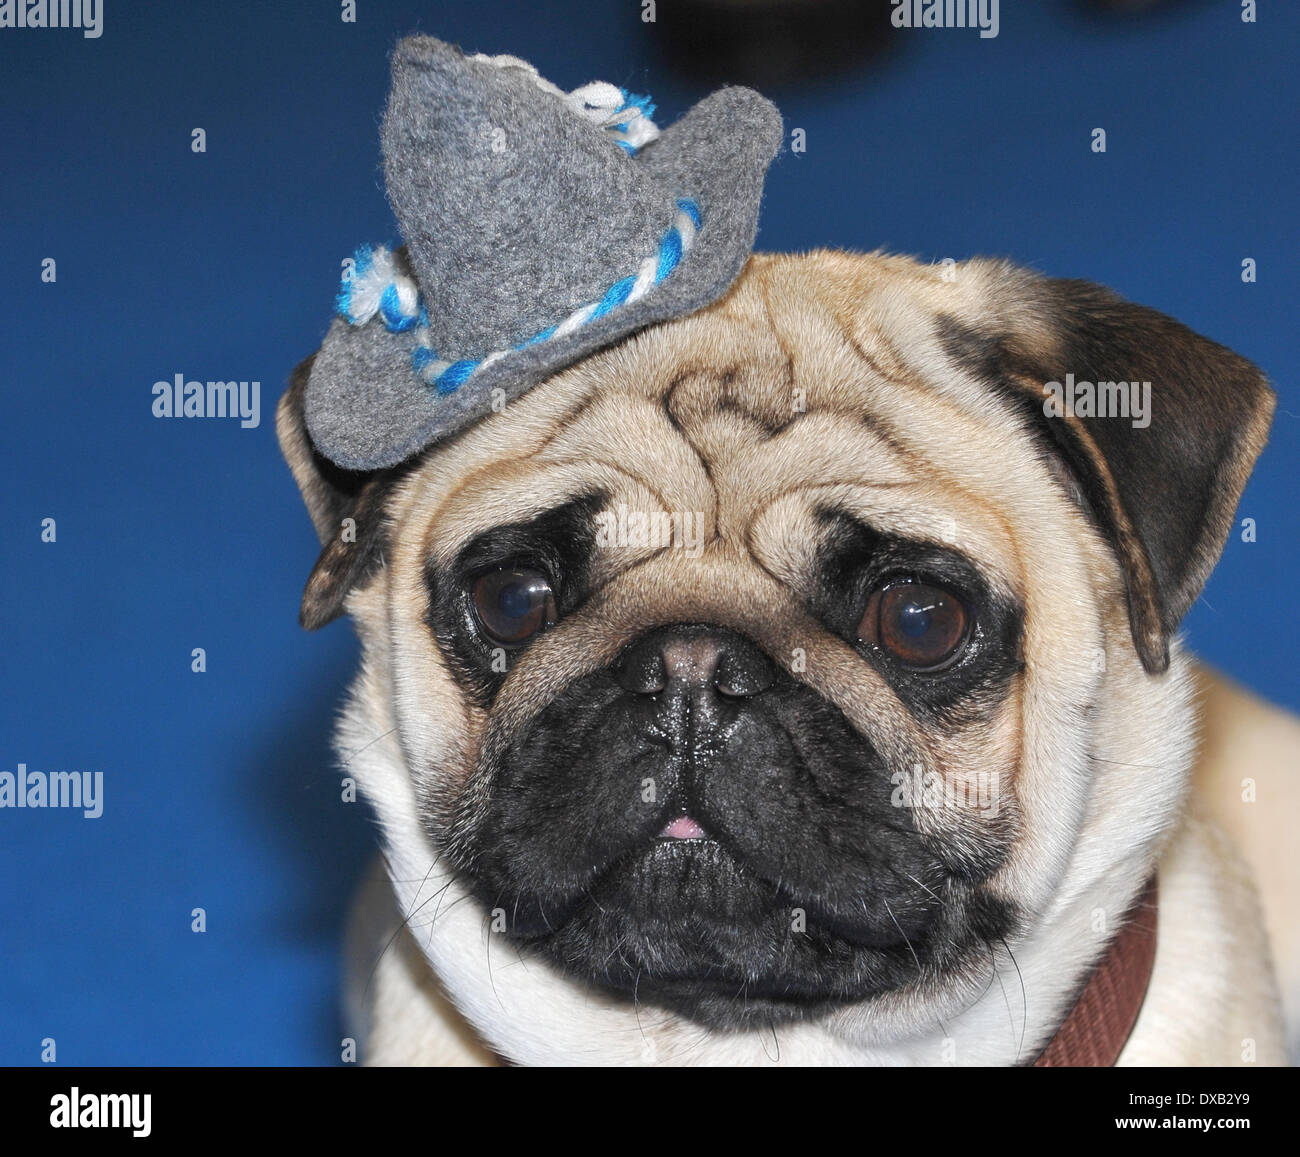 Munich, Germany. 22nd Mar, 2014. Pug 'Luki' wears a Bavaria cap during the pug casting at the Munich Pet Fair (21-23 March 2014) in Munich, Germany, 22 March 2014. The money raised from this event will be donated to the association 'Ein Herz für kranke Tiere e.V.' (lit. a heart for sick animals). Photo: Ursula Dueren/dpa/Alamy Live News - Stock Image